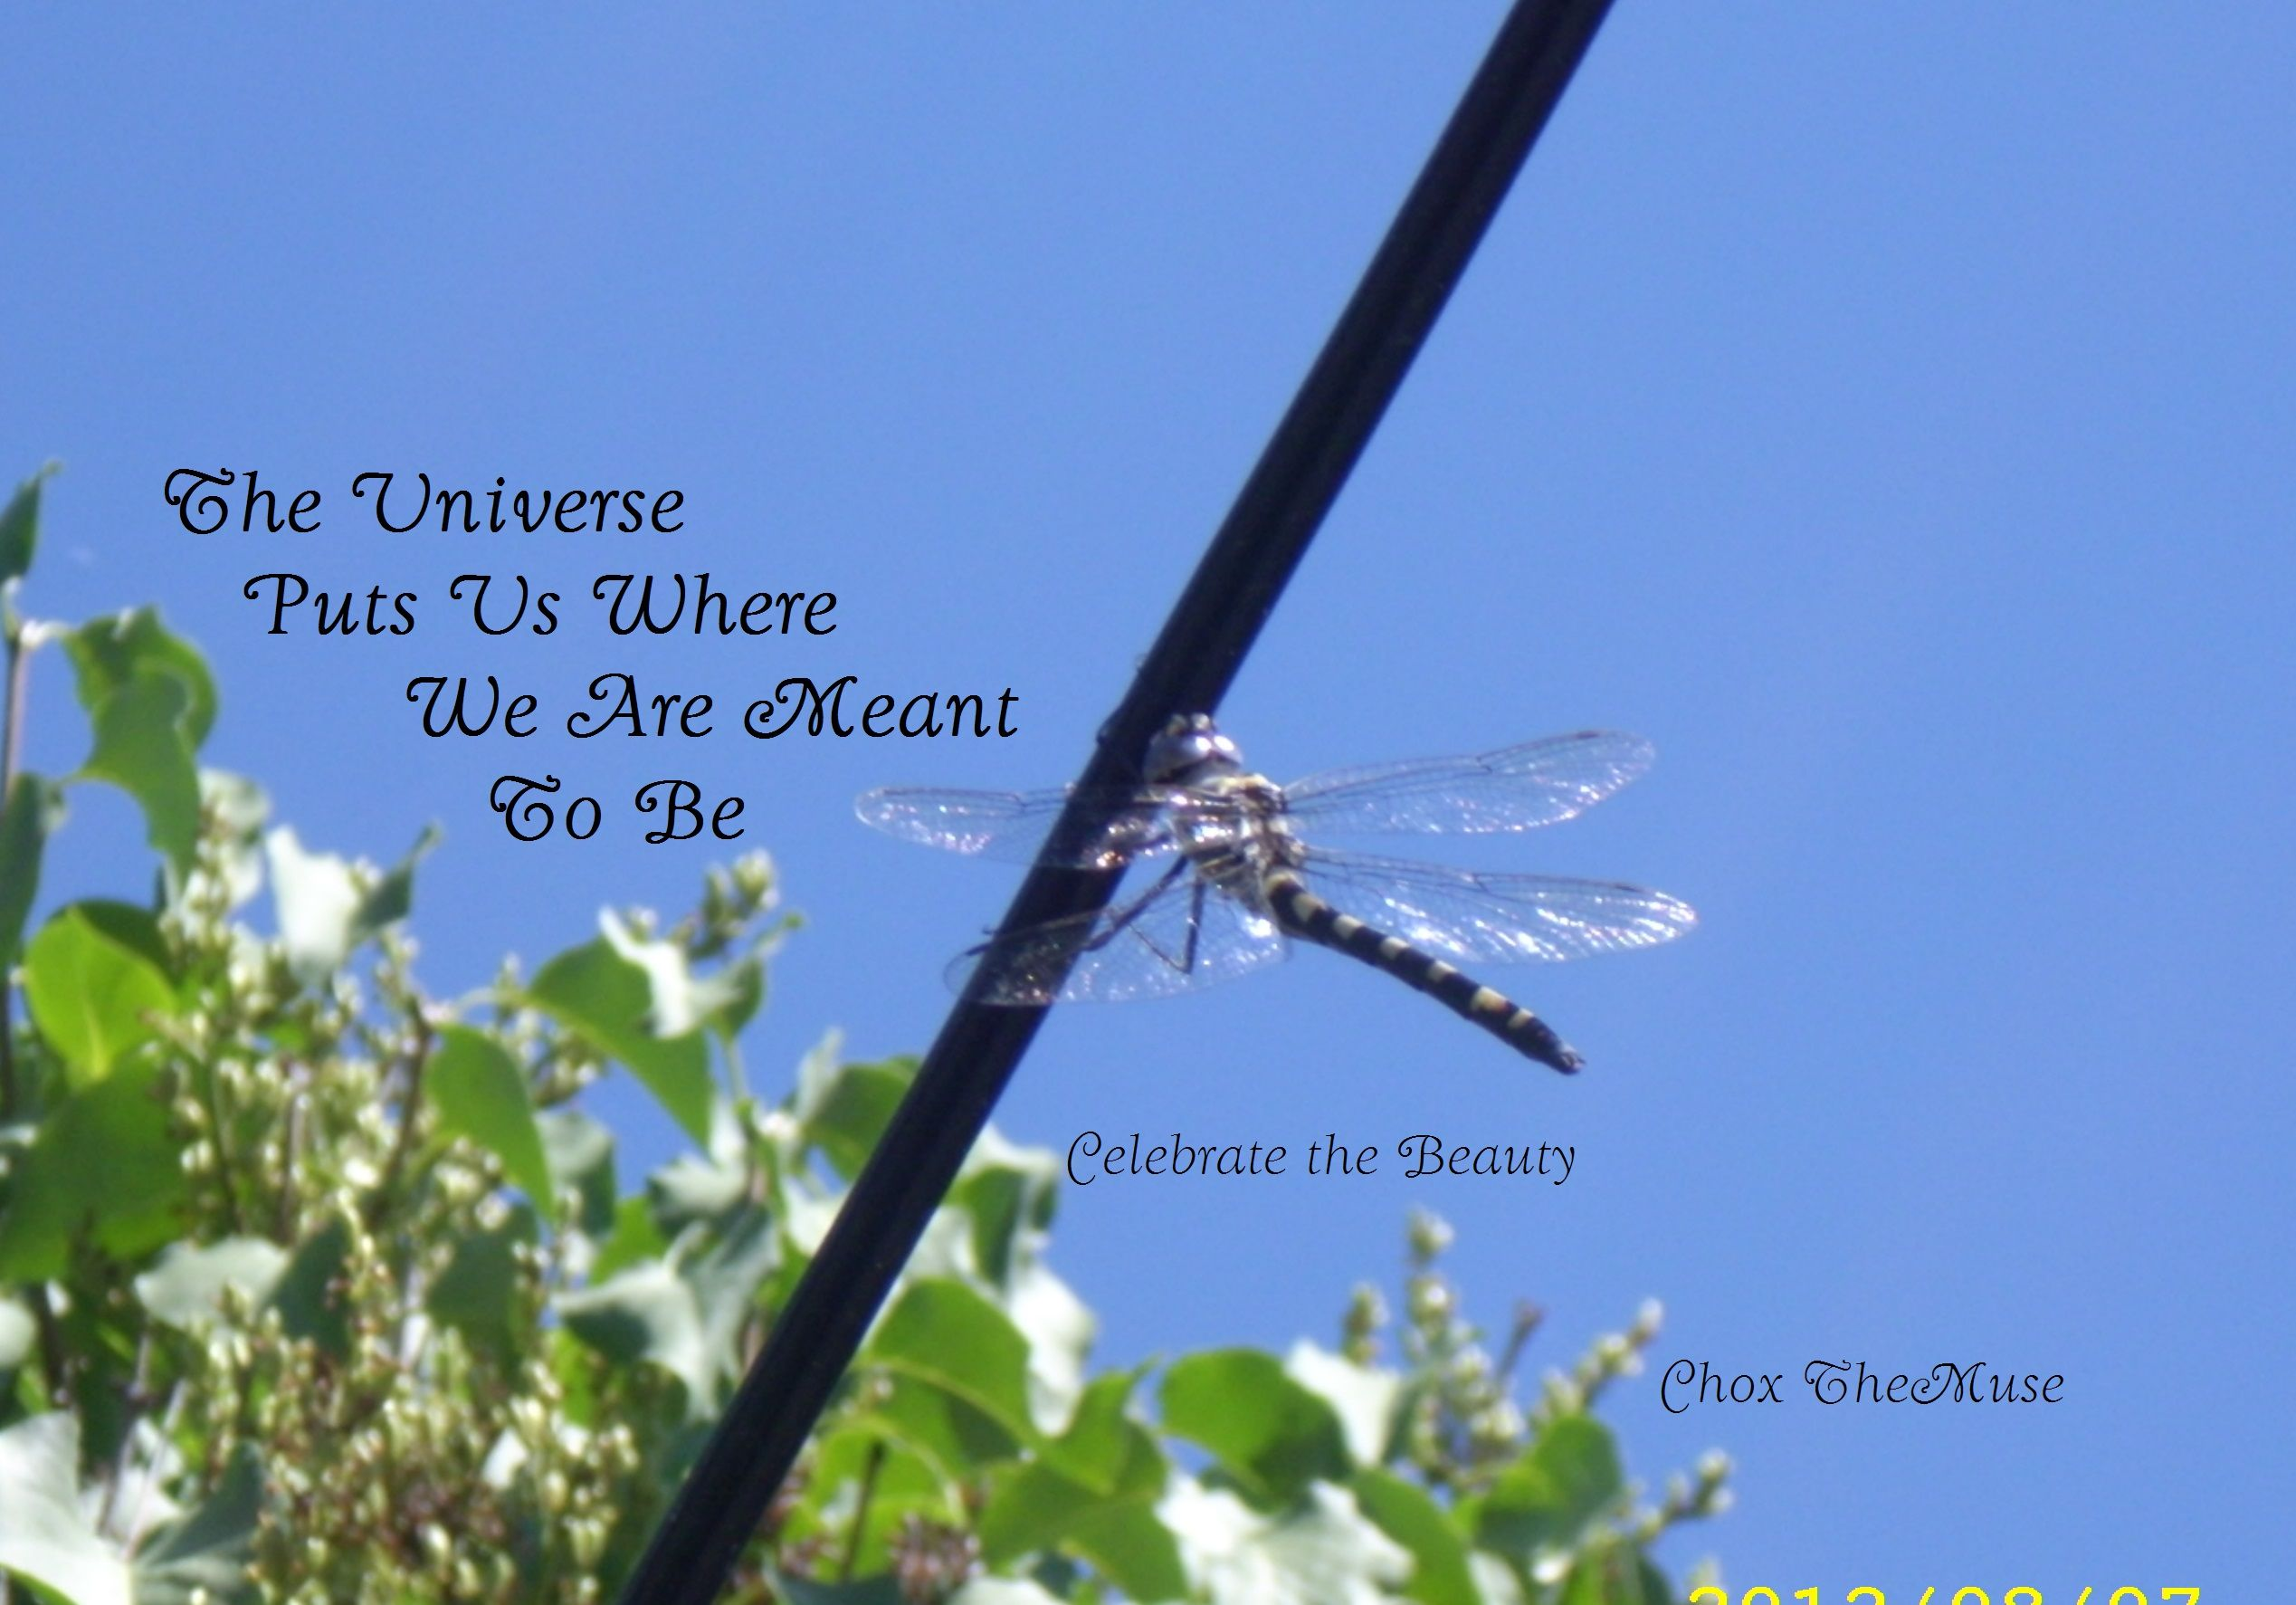 This Large Dragonfly came to visit one day! The Universe Puts Us Where We are Meant to Be! Nature is amazing! #Dragonfly